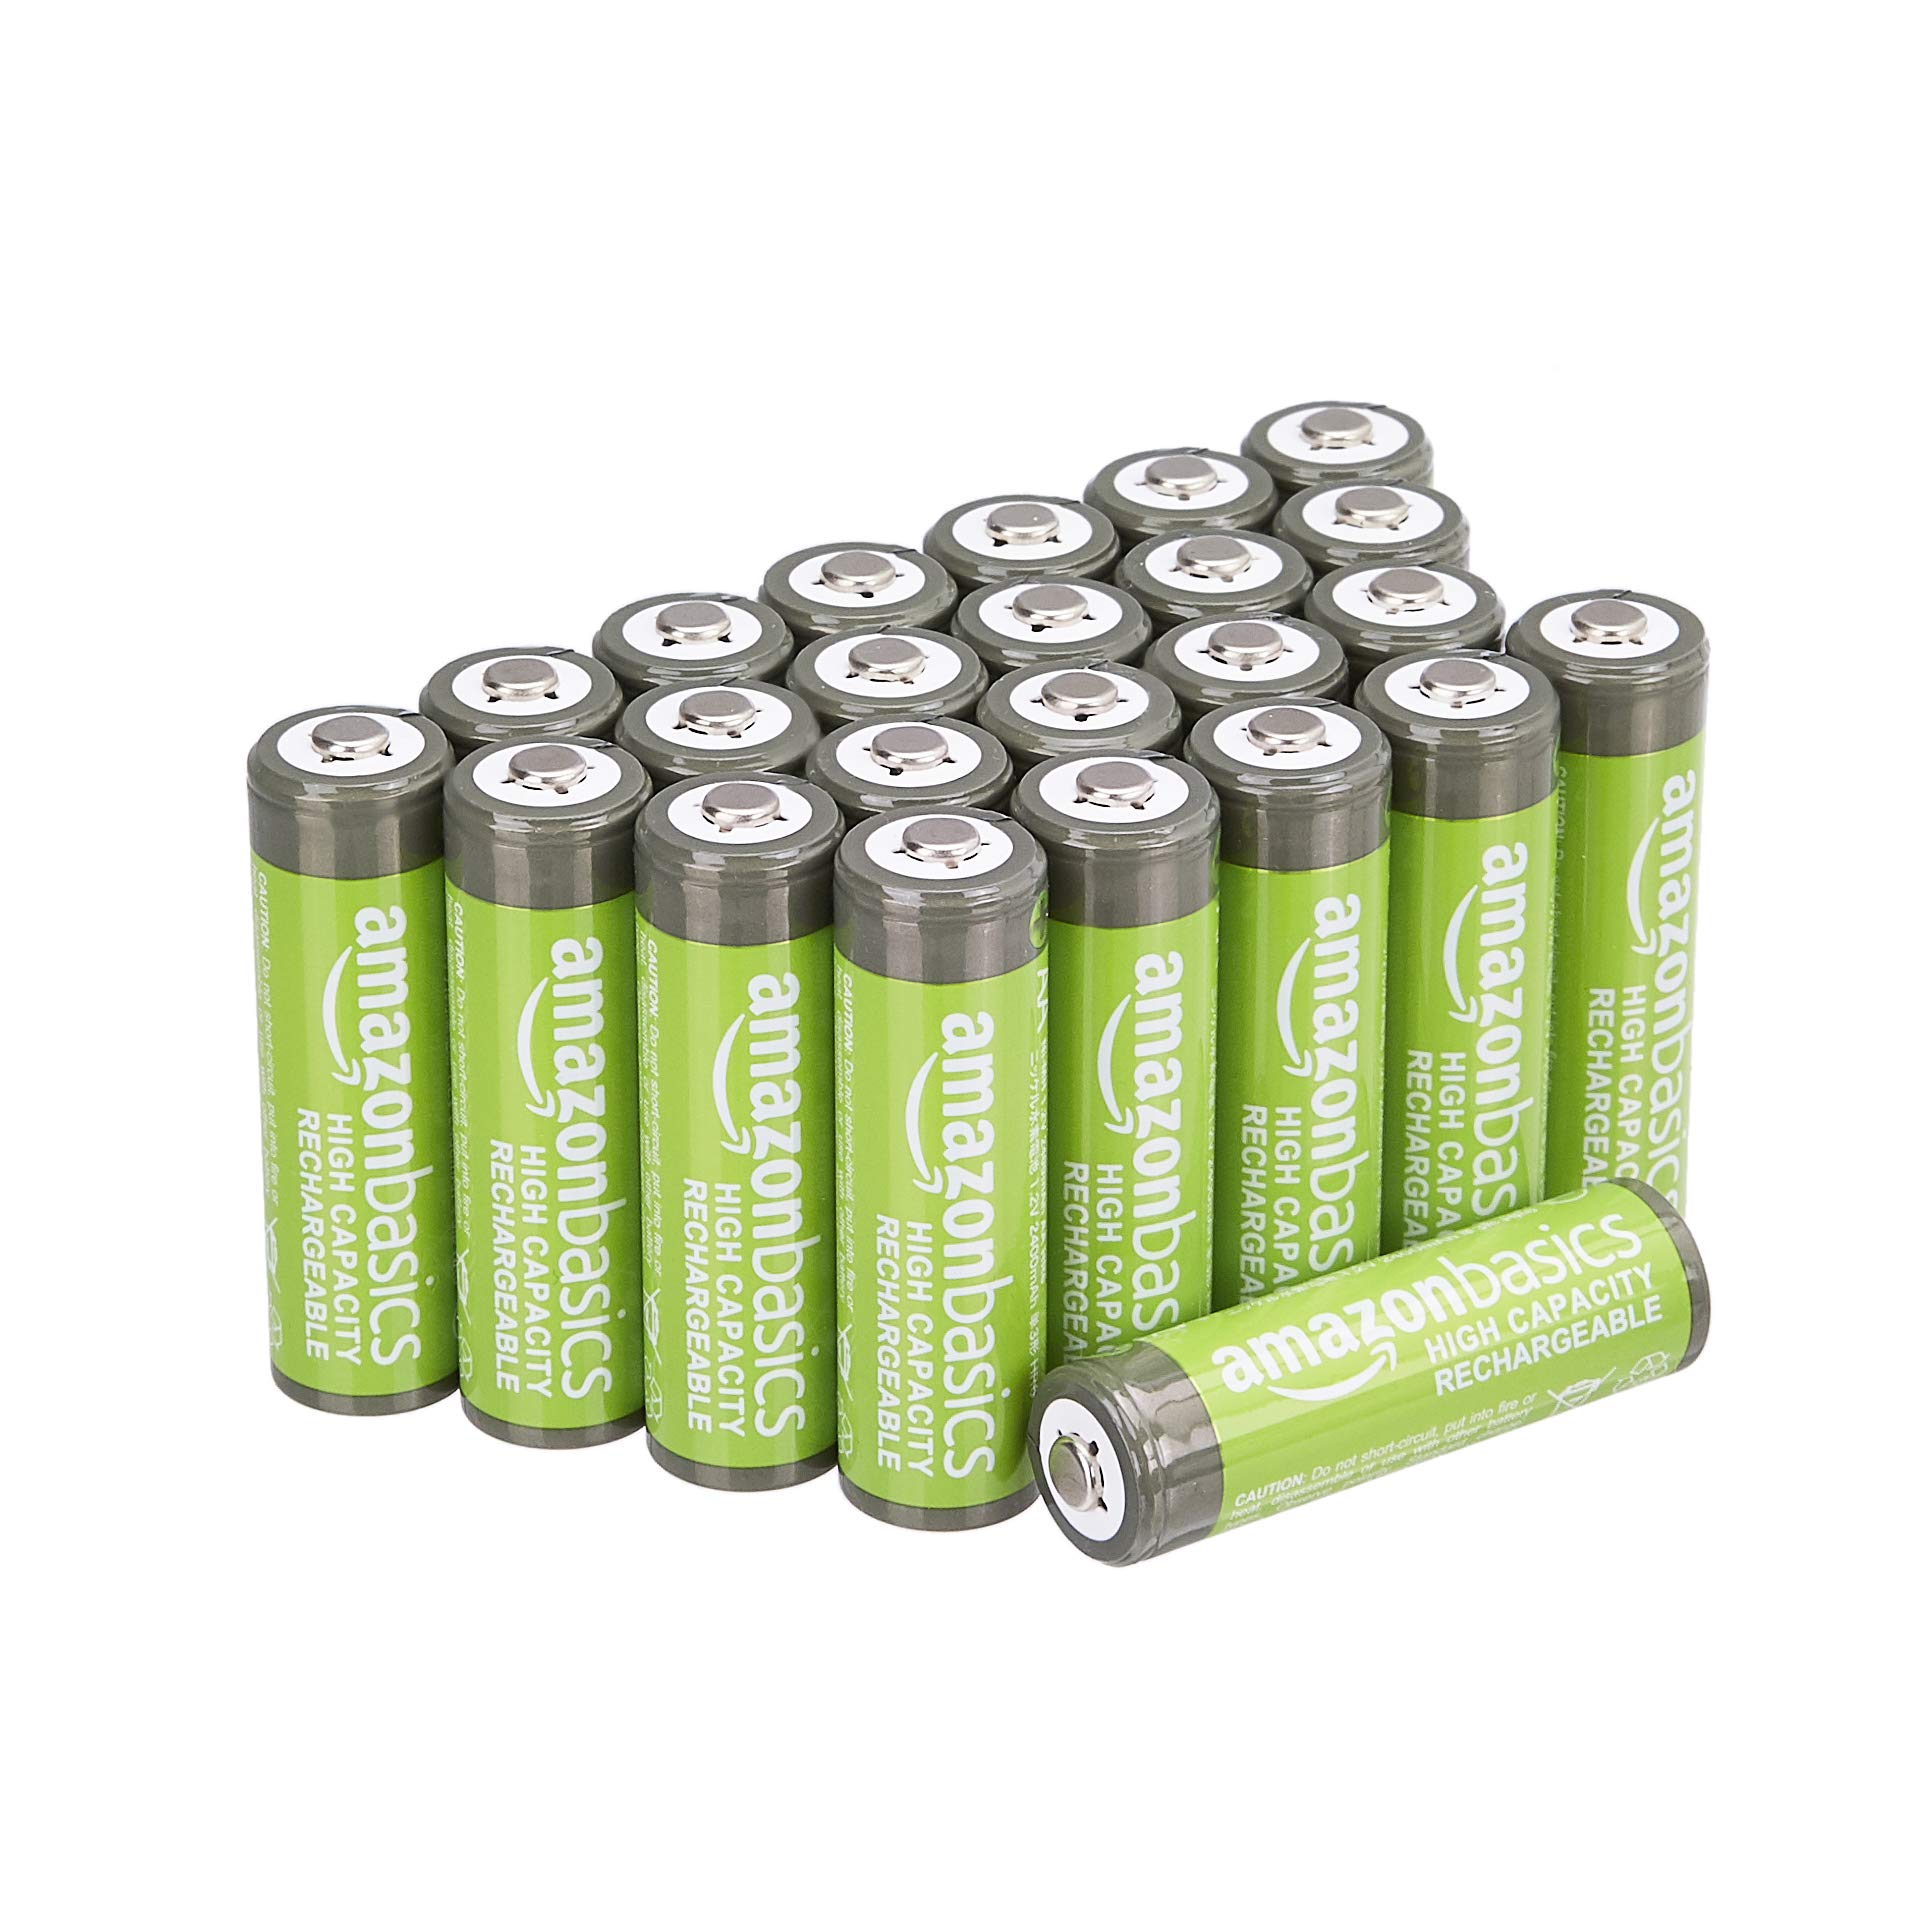 Amazon Basics AA High-Capacity Ni-MH Rechargeable Batteries (2400 mAh), Pre-charged - Pack of 24